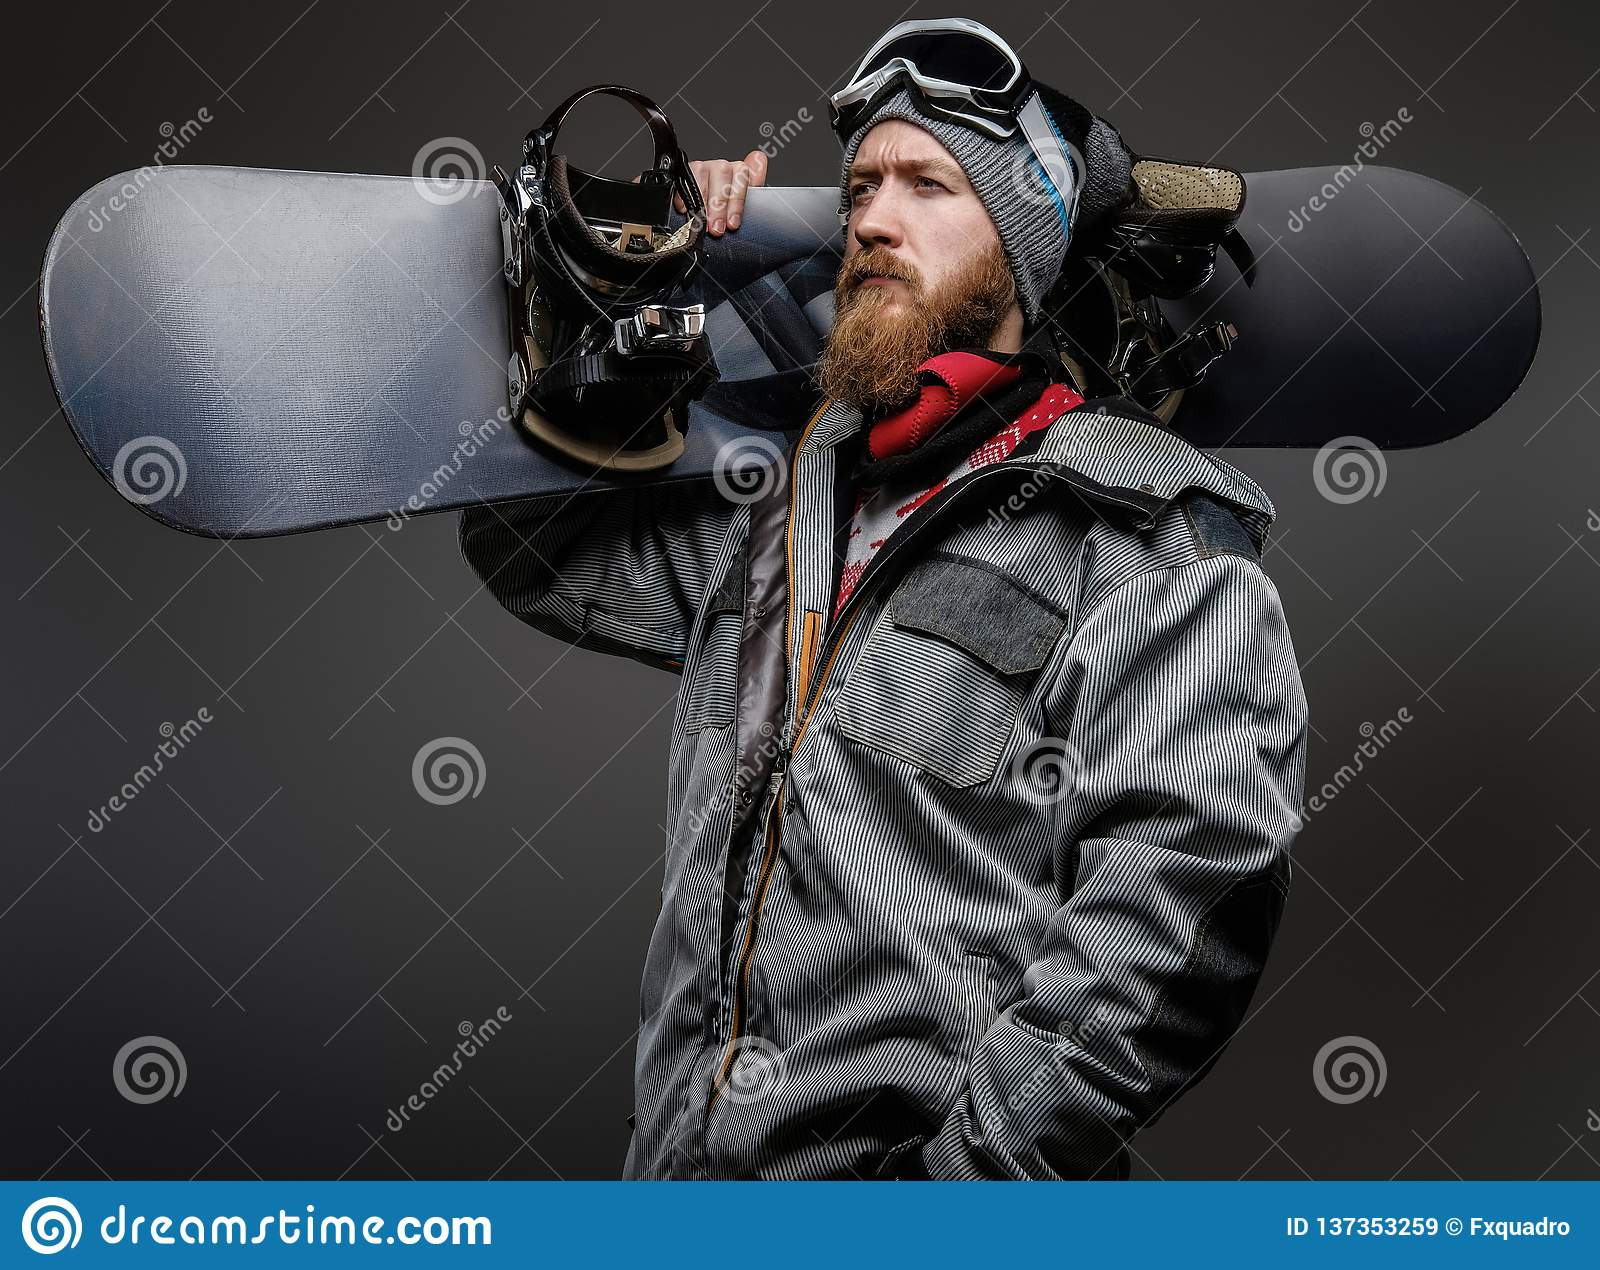 Confident man with a red beard wearing a full equipment holding a snowboard on his shoulder, looking away with a serious